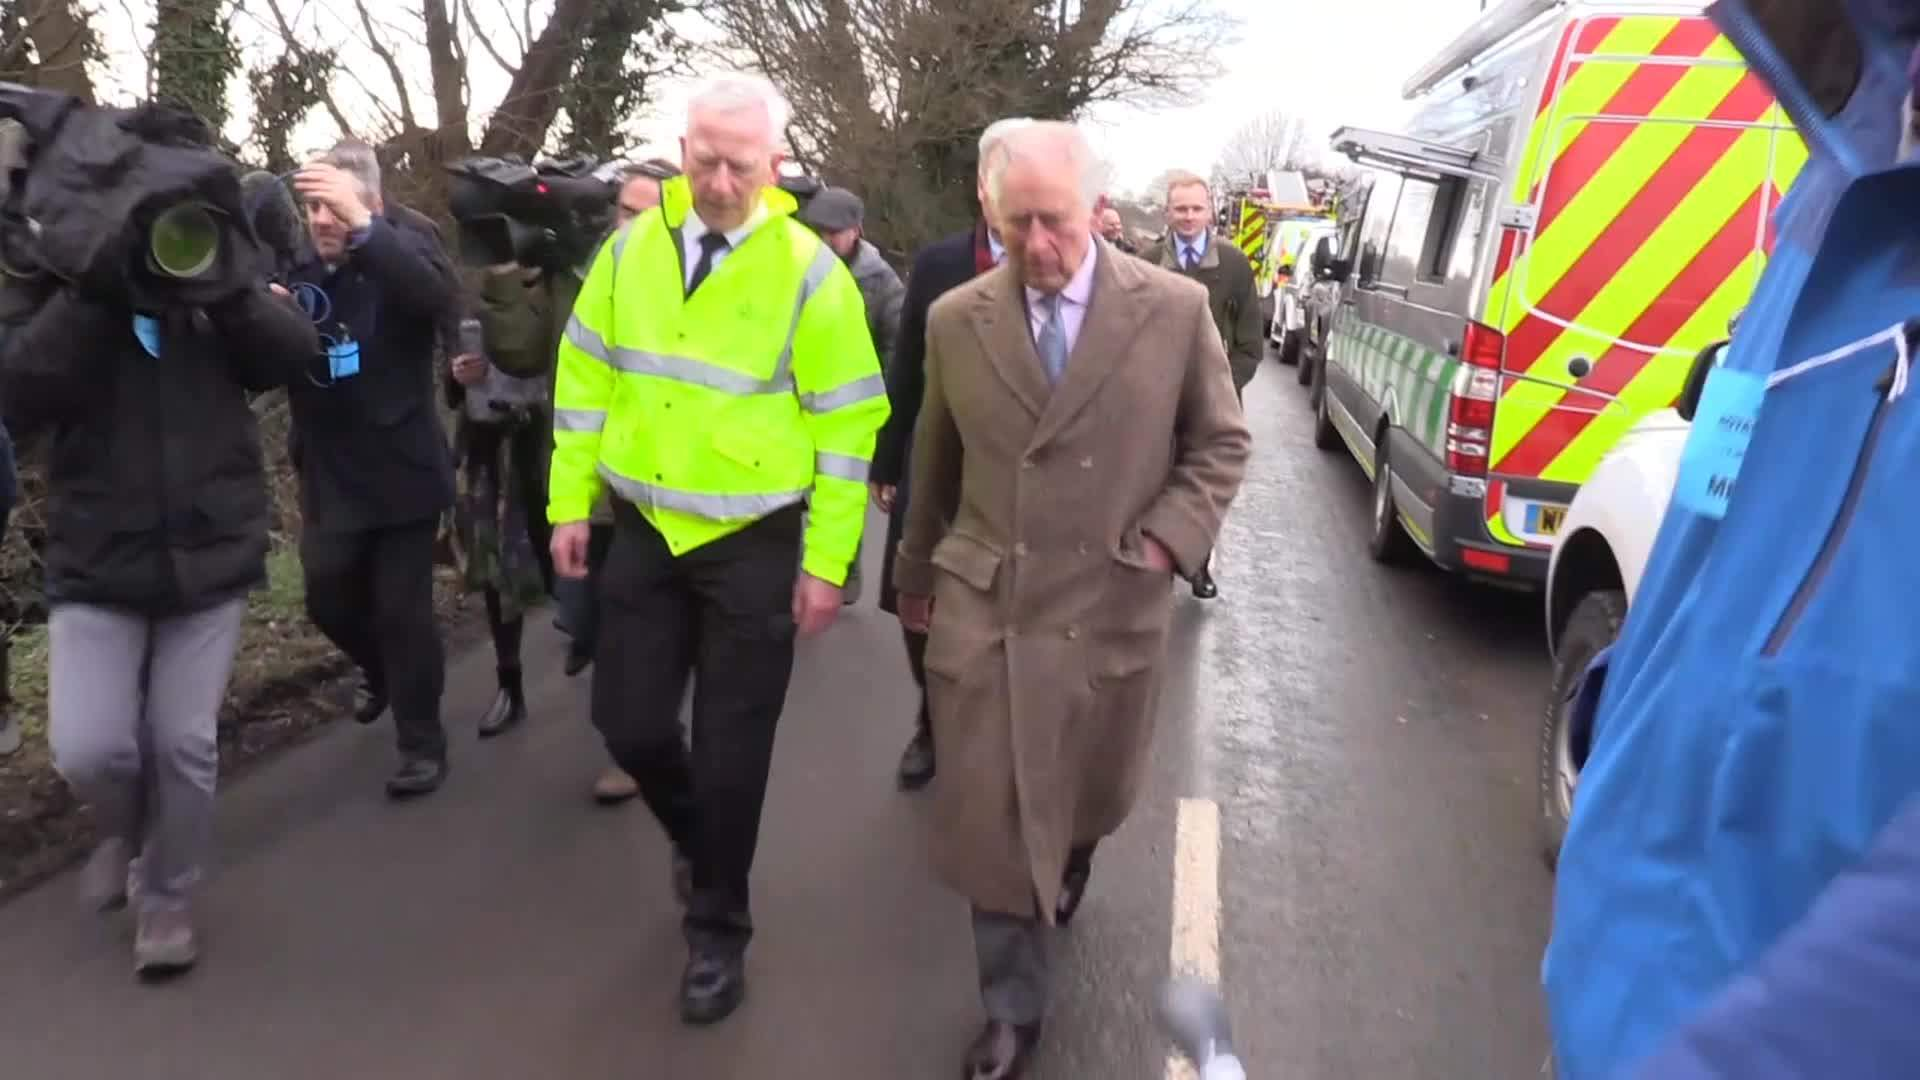 Charles gives an update on his father, the Duke of Edinburgh's health